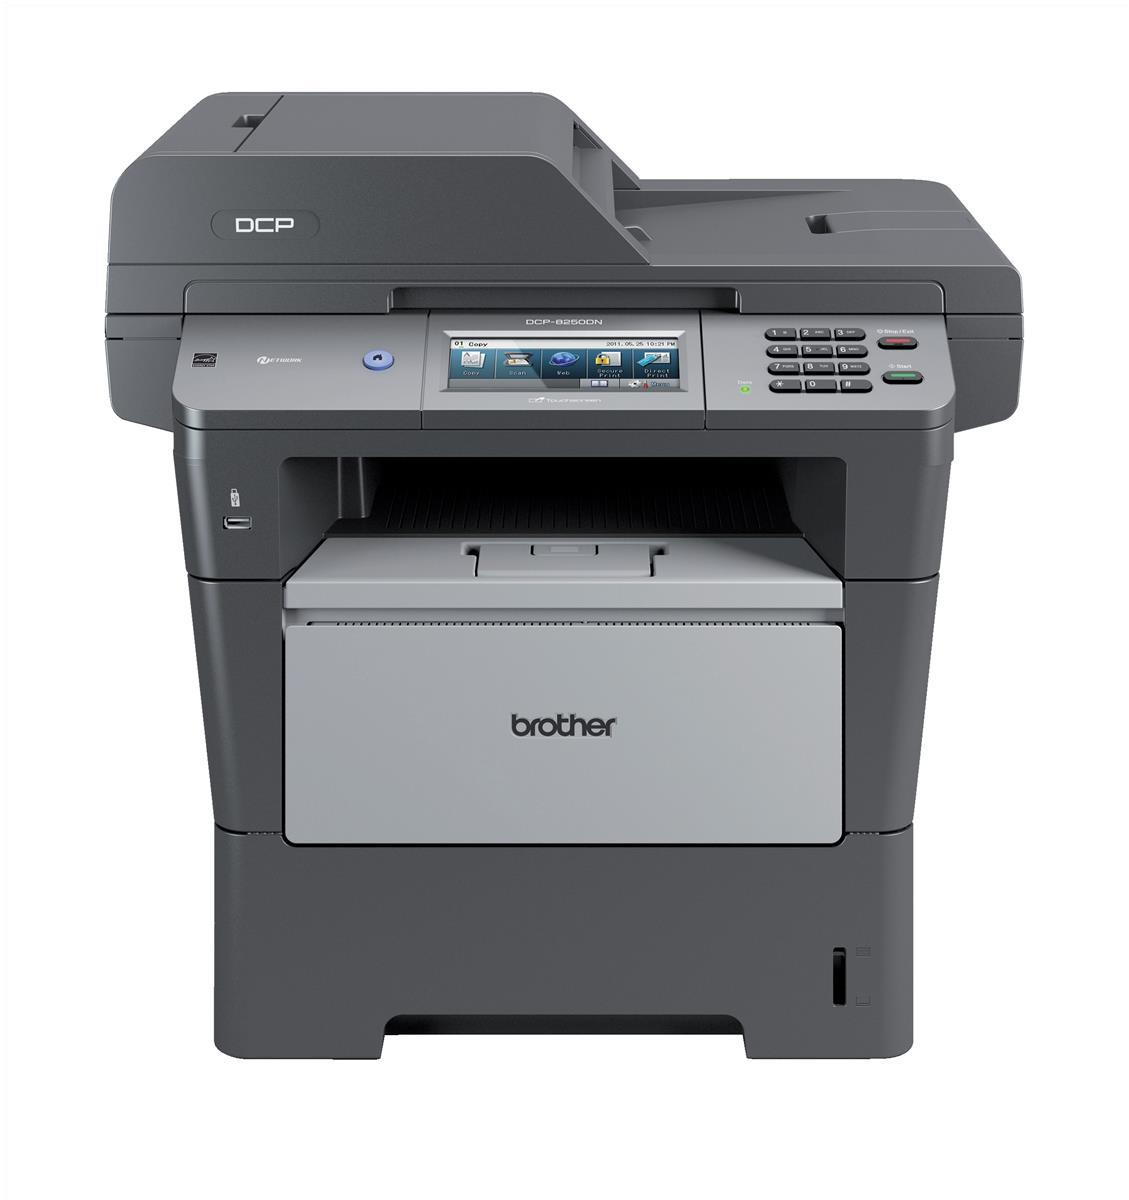 Brother DCP-8250DN High-Speed Mono Laser All-in-One Printer Duplex Network Grey (Pack of 1) DCP8250DNZU1